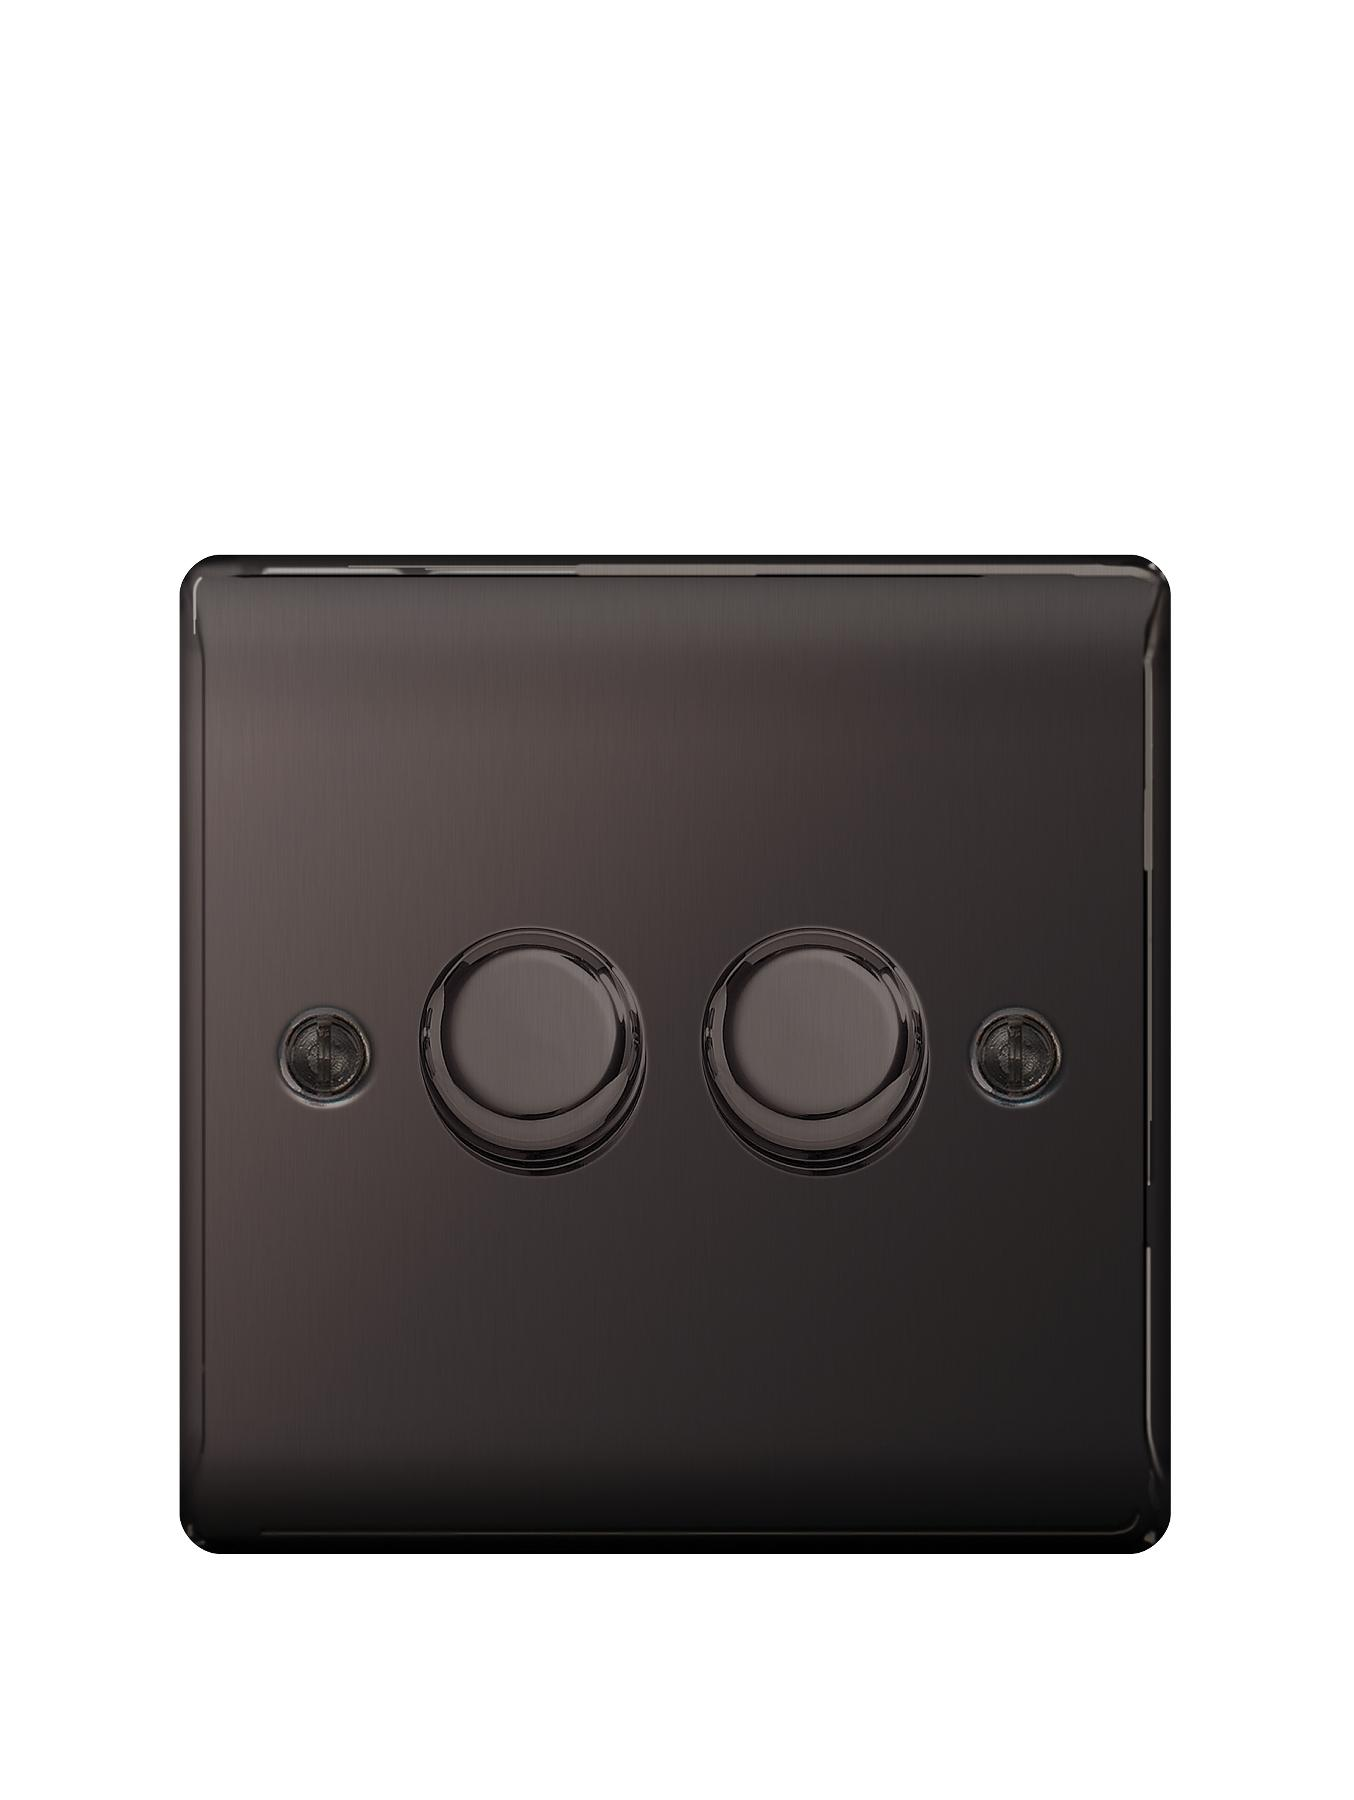 British General Electrical Raised 2g Dimmer Switch - Black Nickel